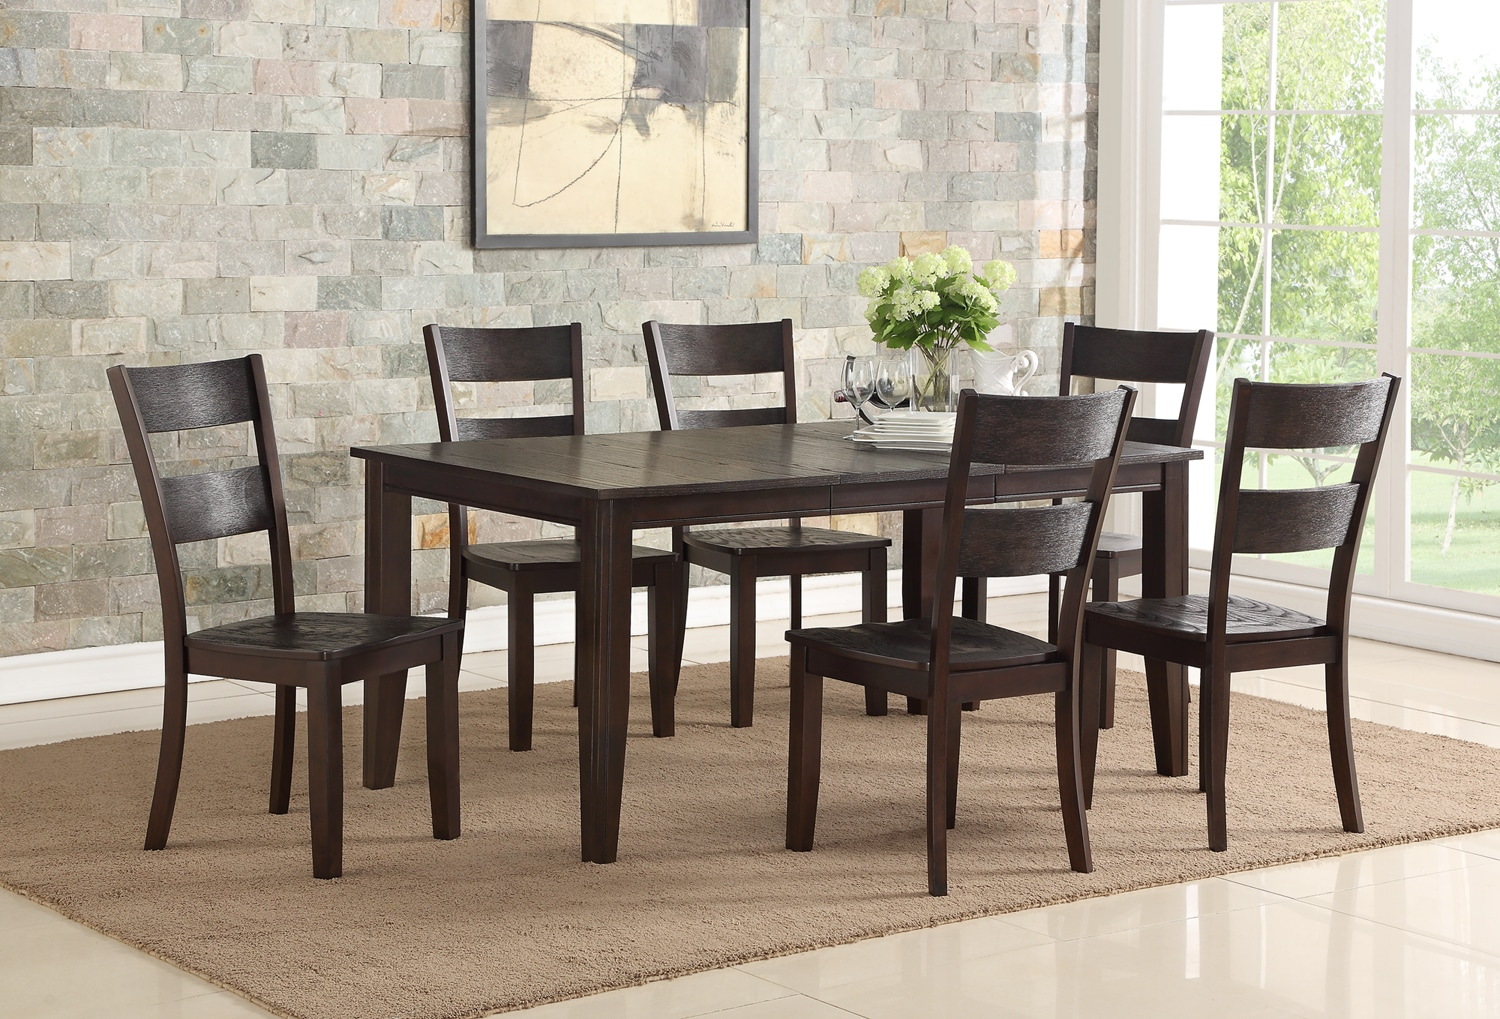 Holland 7-Piece Dinette Set - Espresso